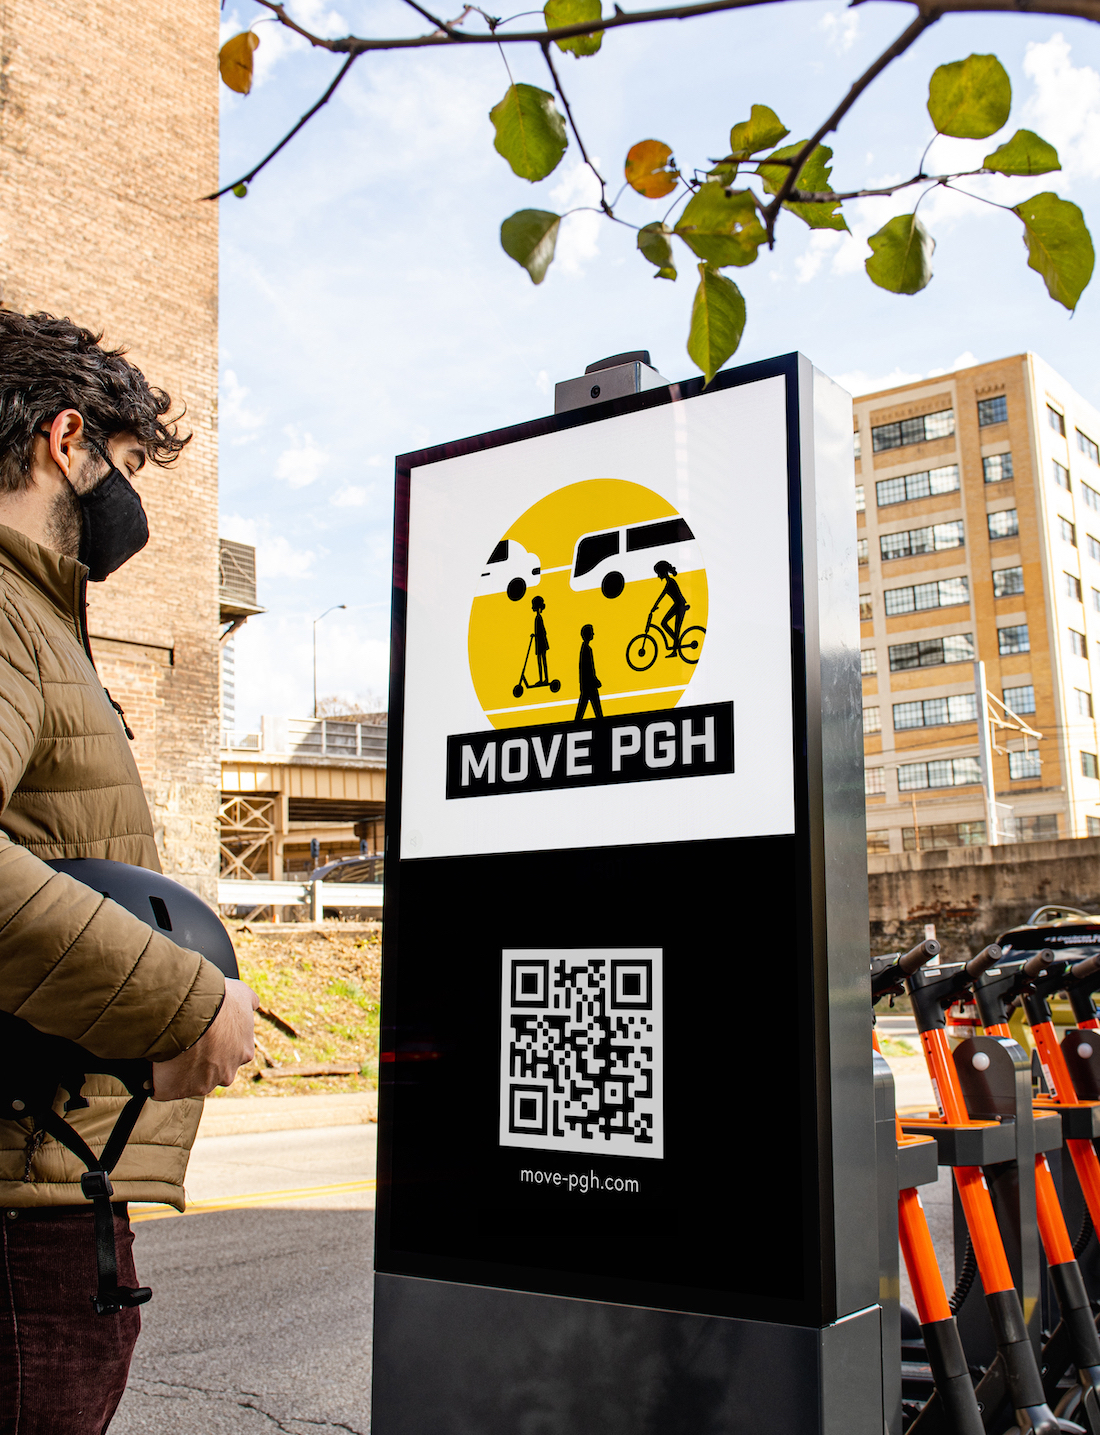 """A man looks at a sign on that says """"Move PGH."""" The sign is attached to a scooter charging station with several scooters parked in it."""